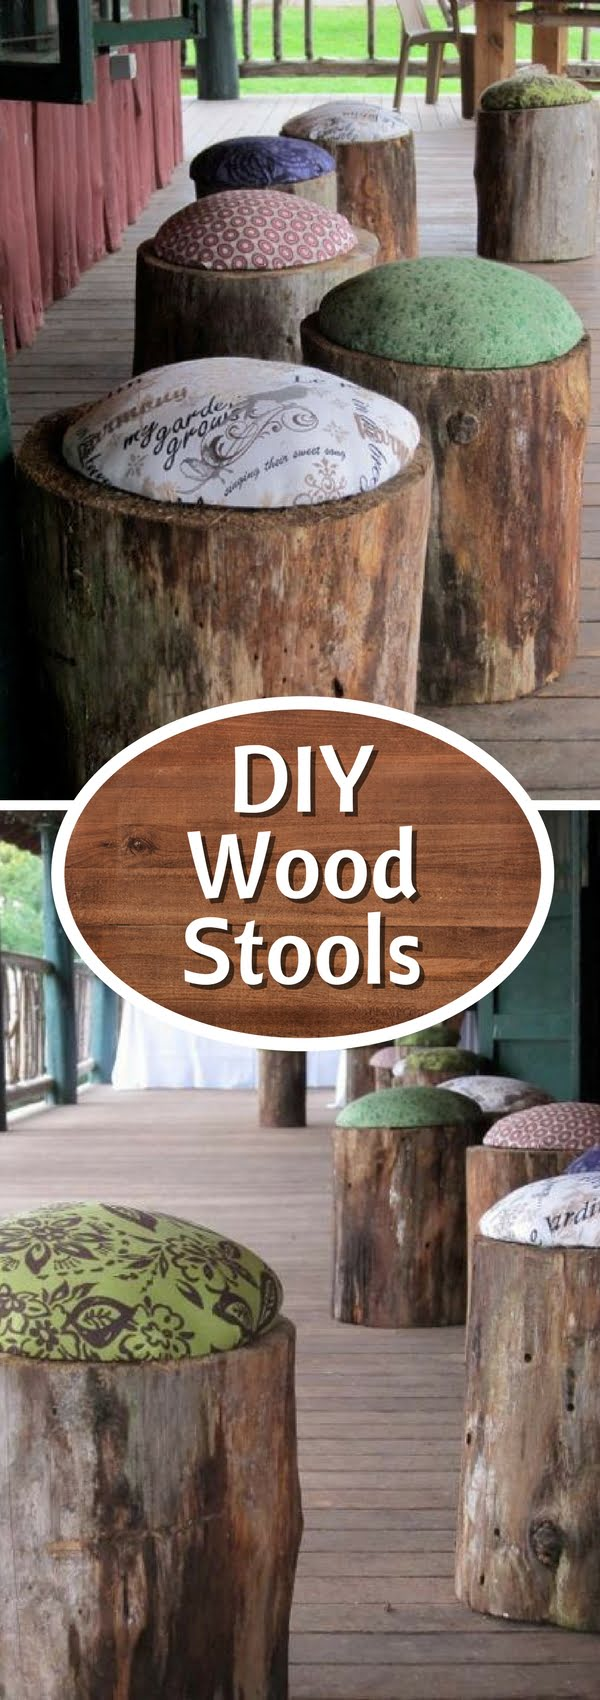 How to make #DIY tree stump stools